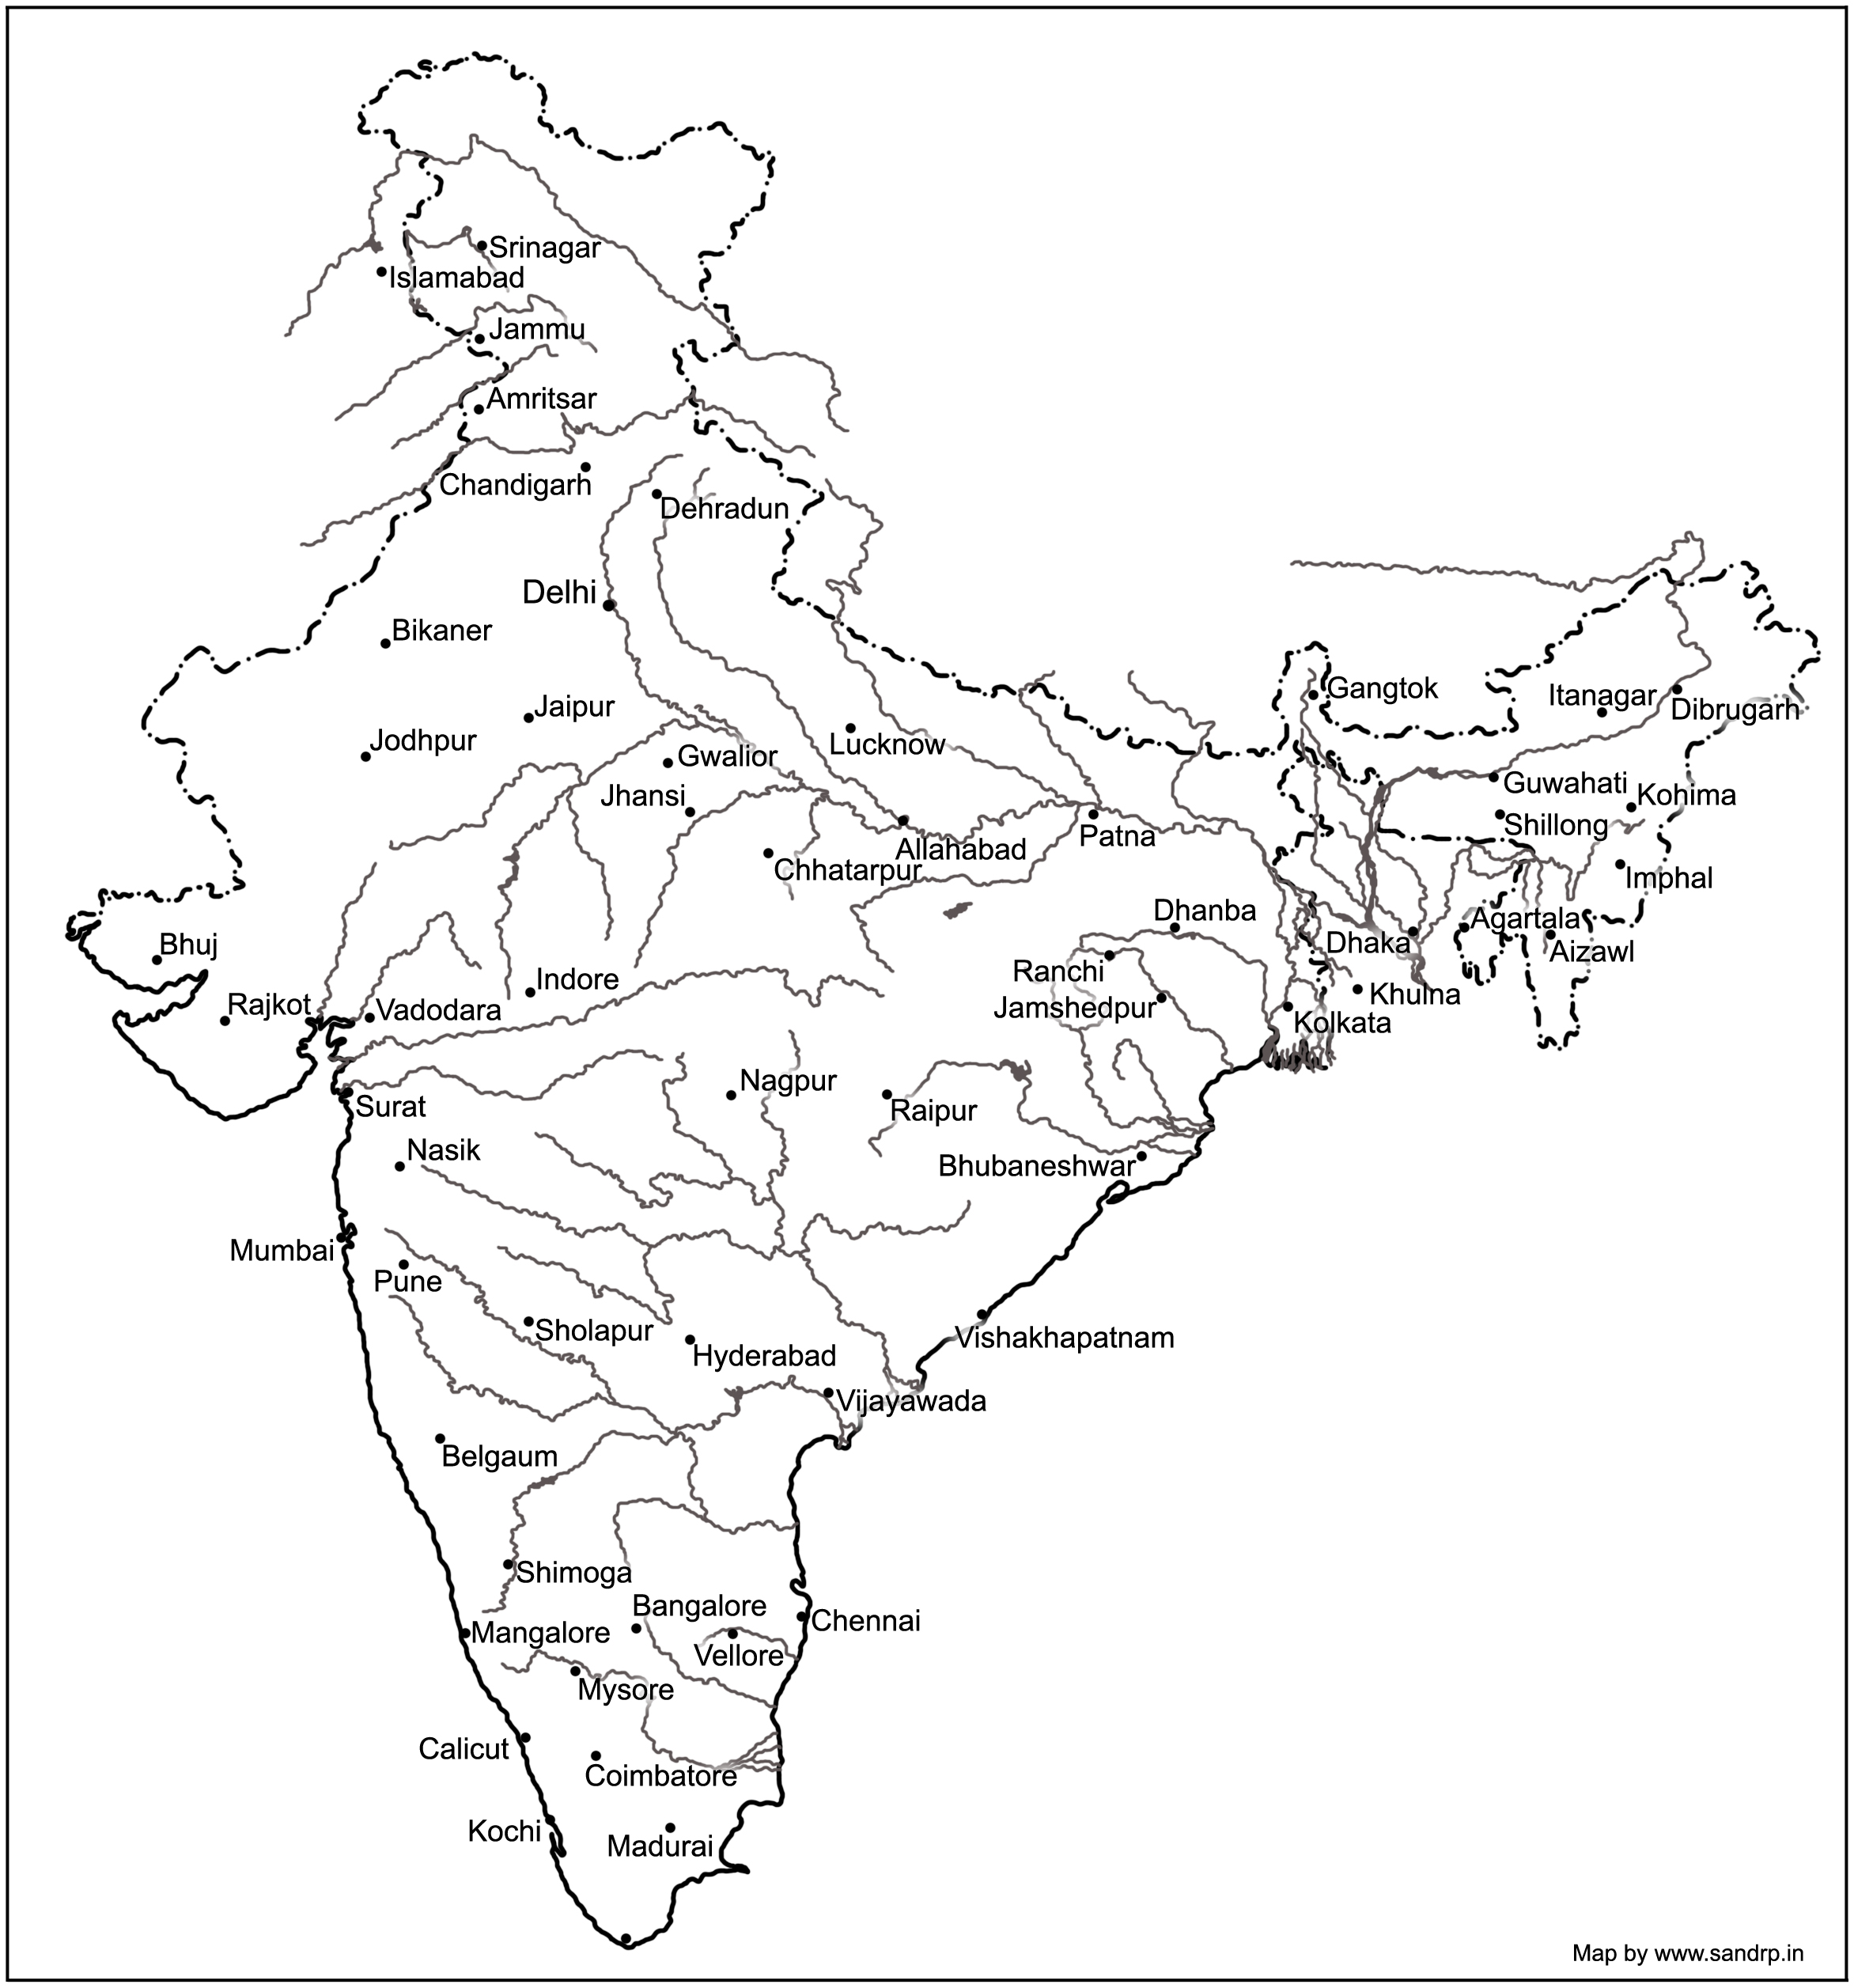 Know our rivers: A beginners guide to river clification ... Image Of India Rivers Map on map of mauritius rivers, india outline map with rivers, map of japan, map of italy rivers, map of brahmaputra river, map of indiana rivers, map of usa rivers, map of algeria rivers, us map w rivers, map of the godavari river, map of yemen rivers, map of rivers in colombia, map of asia, map of south korea rivers, map of southeast us rivers, map of european countries and rivers, map of the main rivers, map of laos rivers, map of england with rivers and mountains,